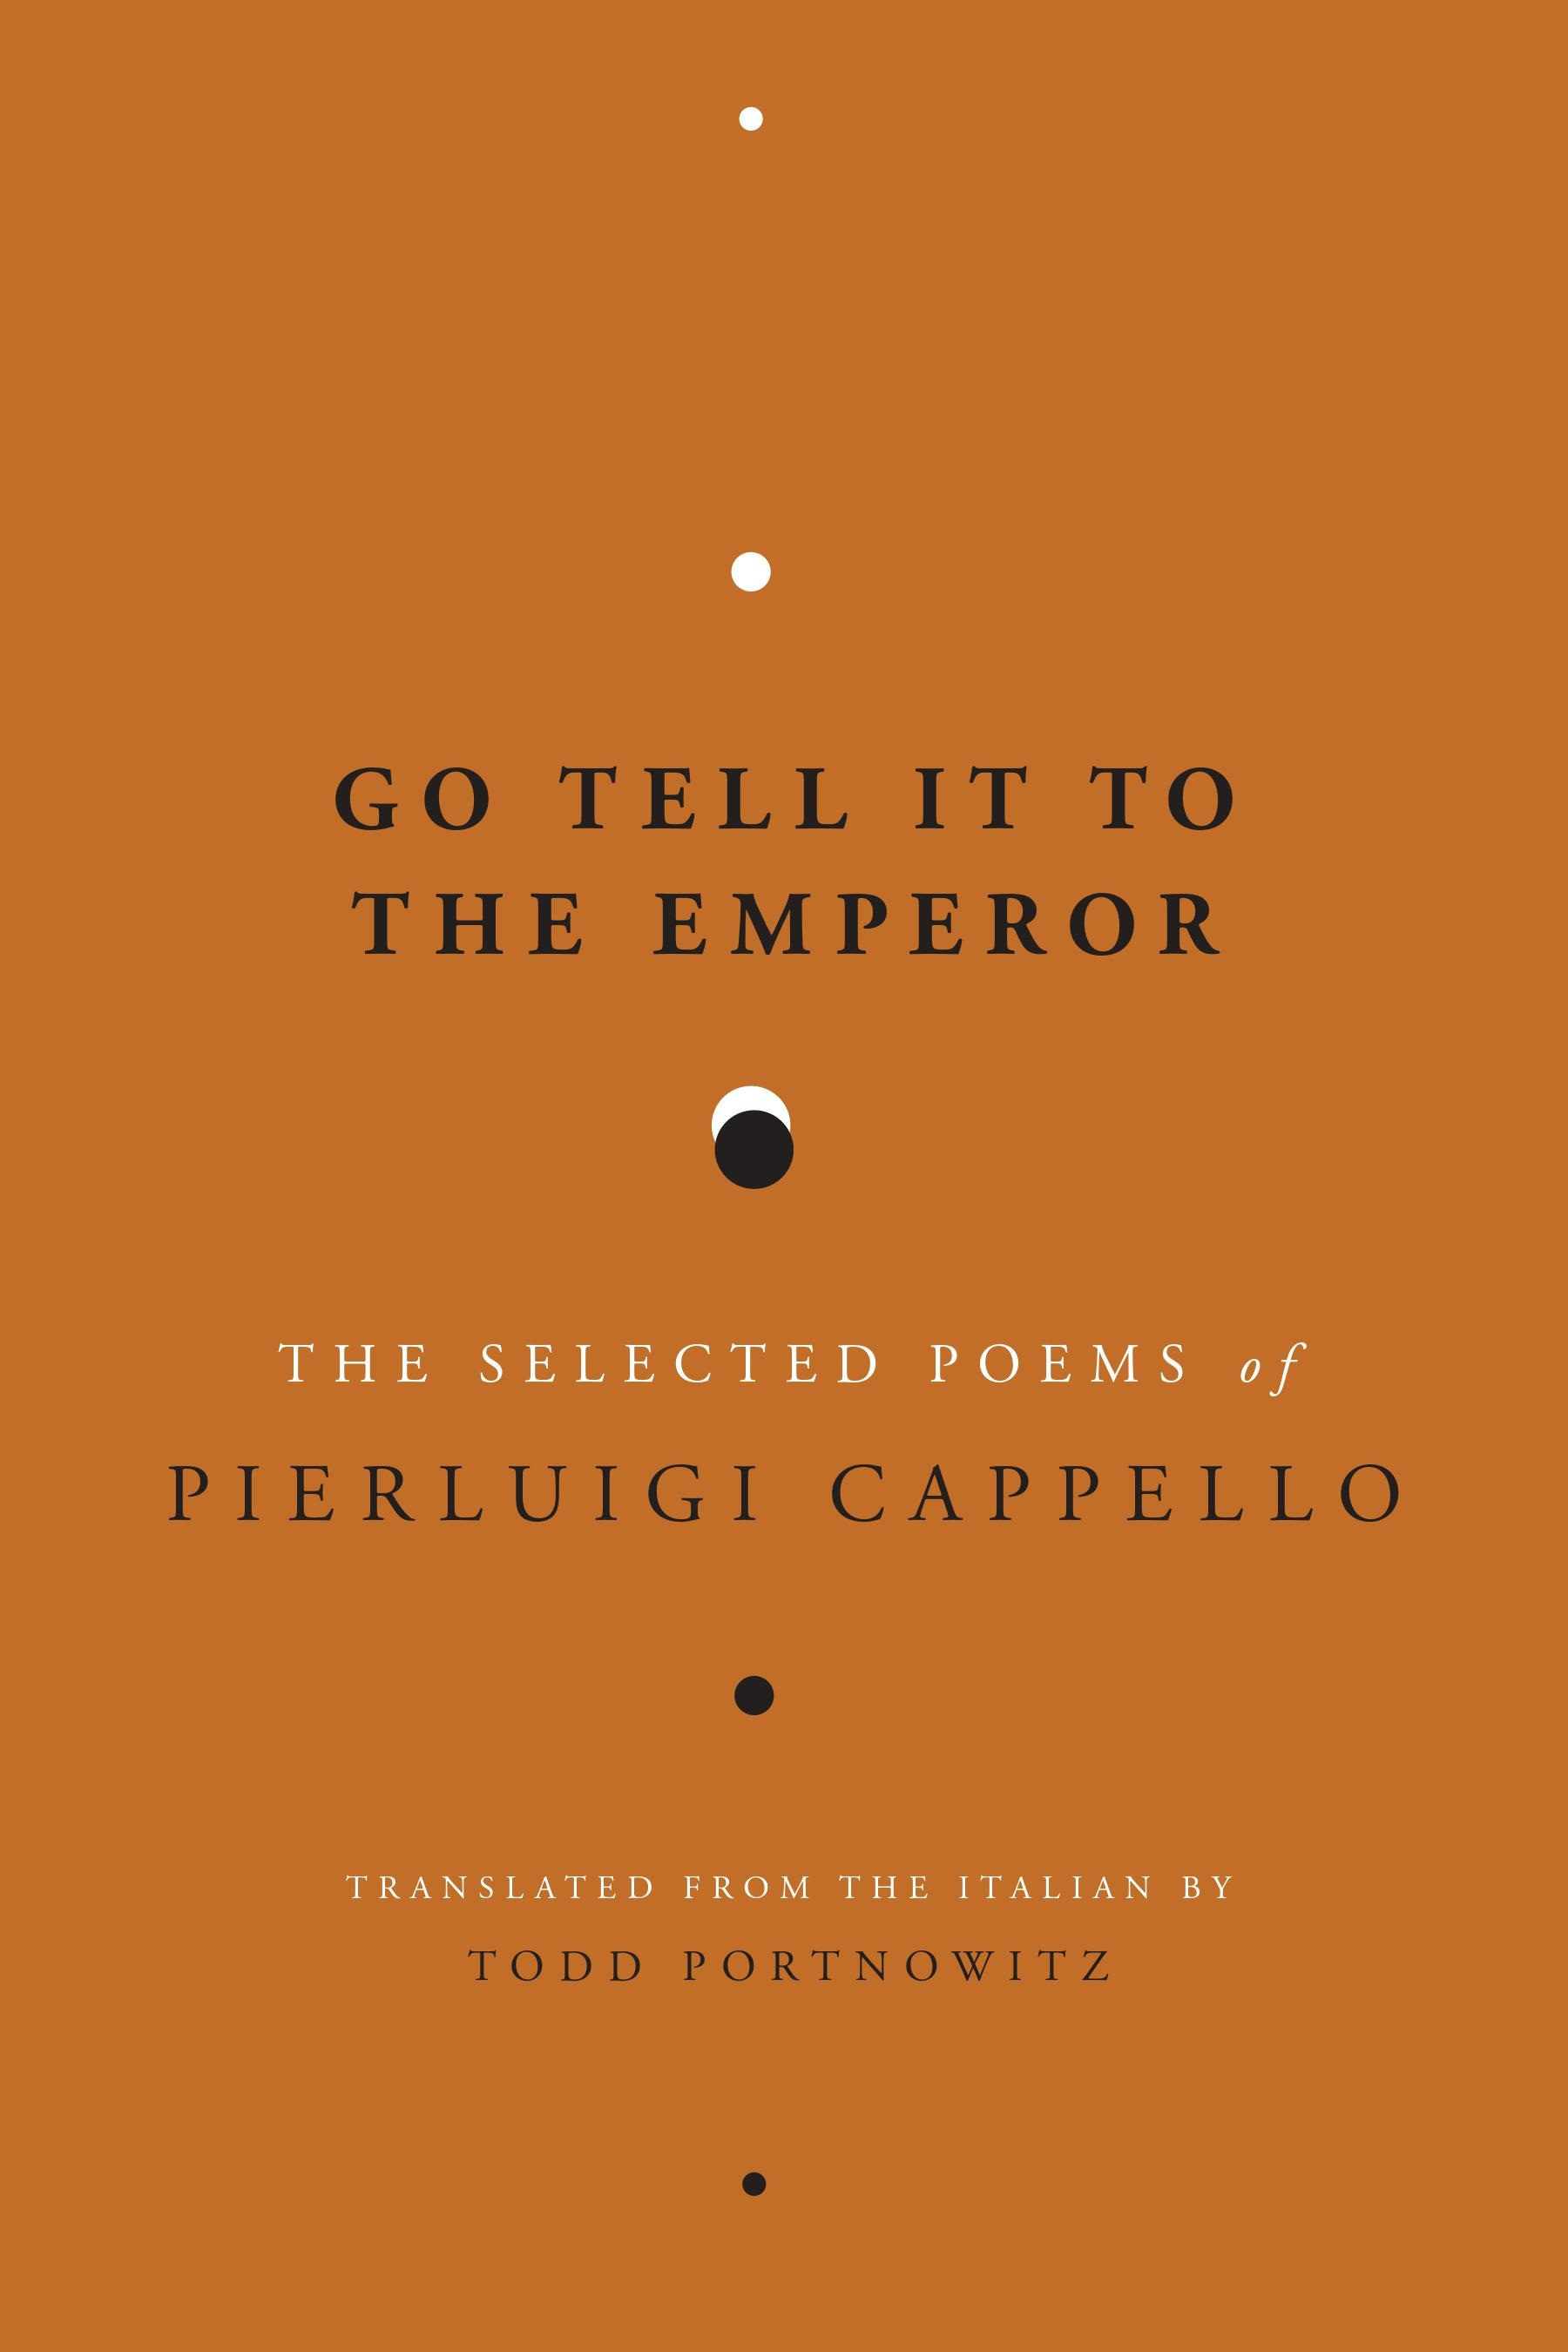 GO TELL IT TO THE EMPEROR  by Pierluigi Cappello  Spuyten Duyvil  September 2019